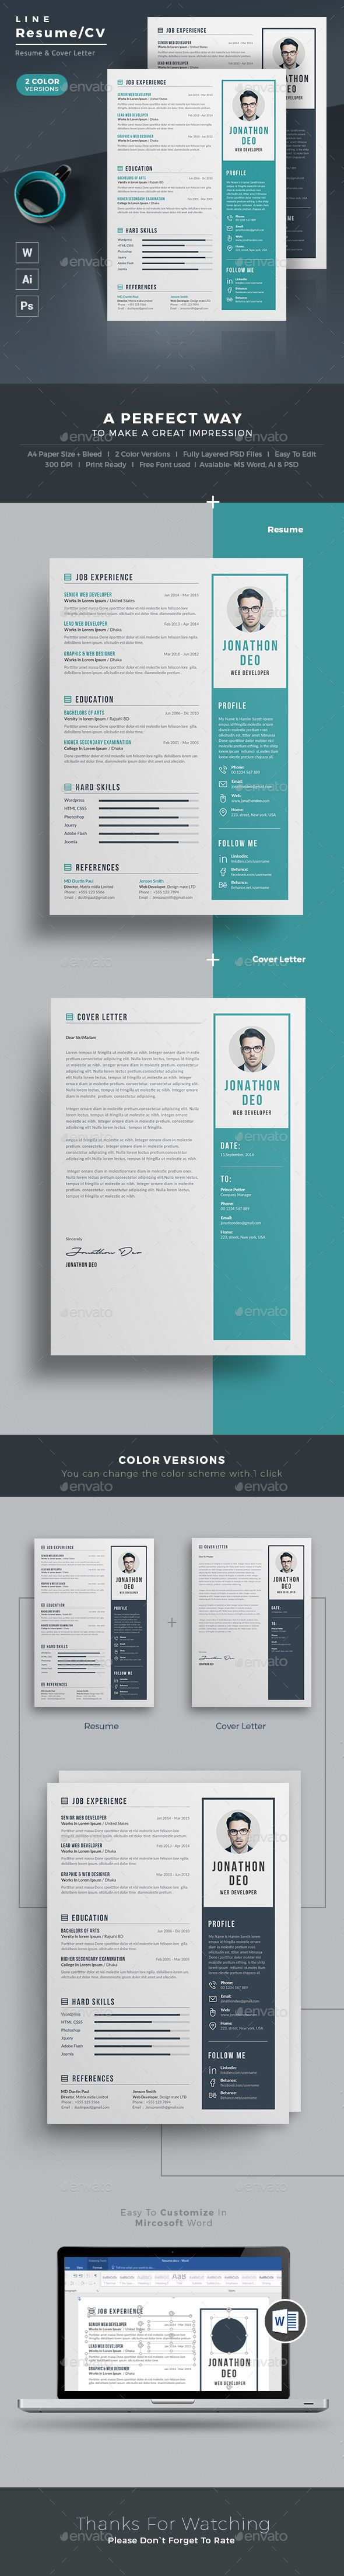 What Is A Resum C3 83. charming resume by design for your curriculum  X Bedroom Decorating Idea C A E Ac C A Html on